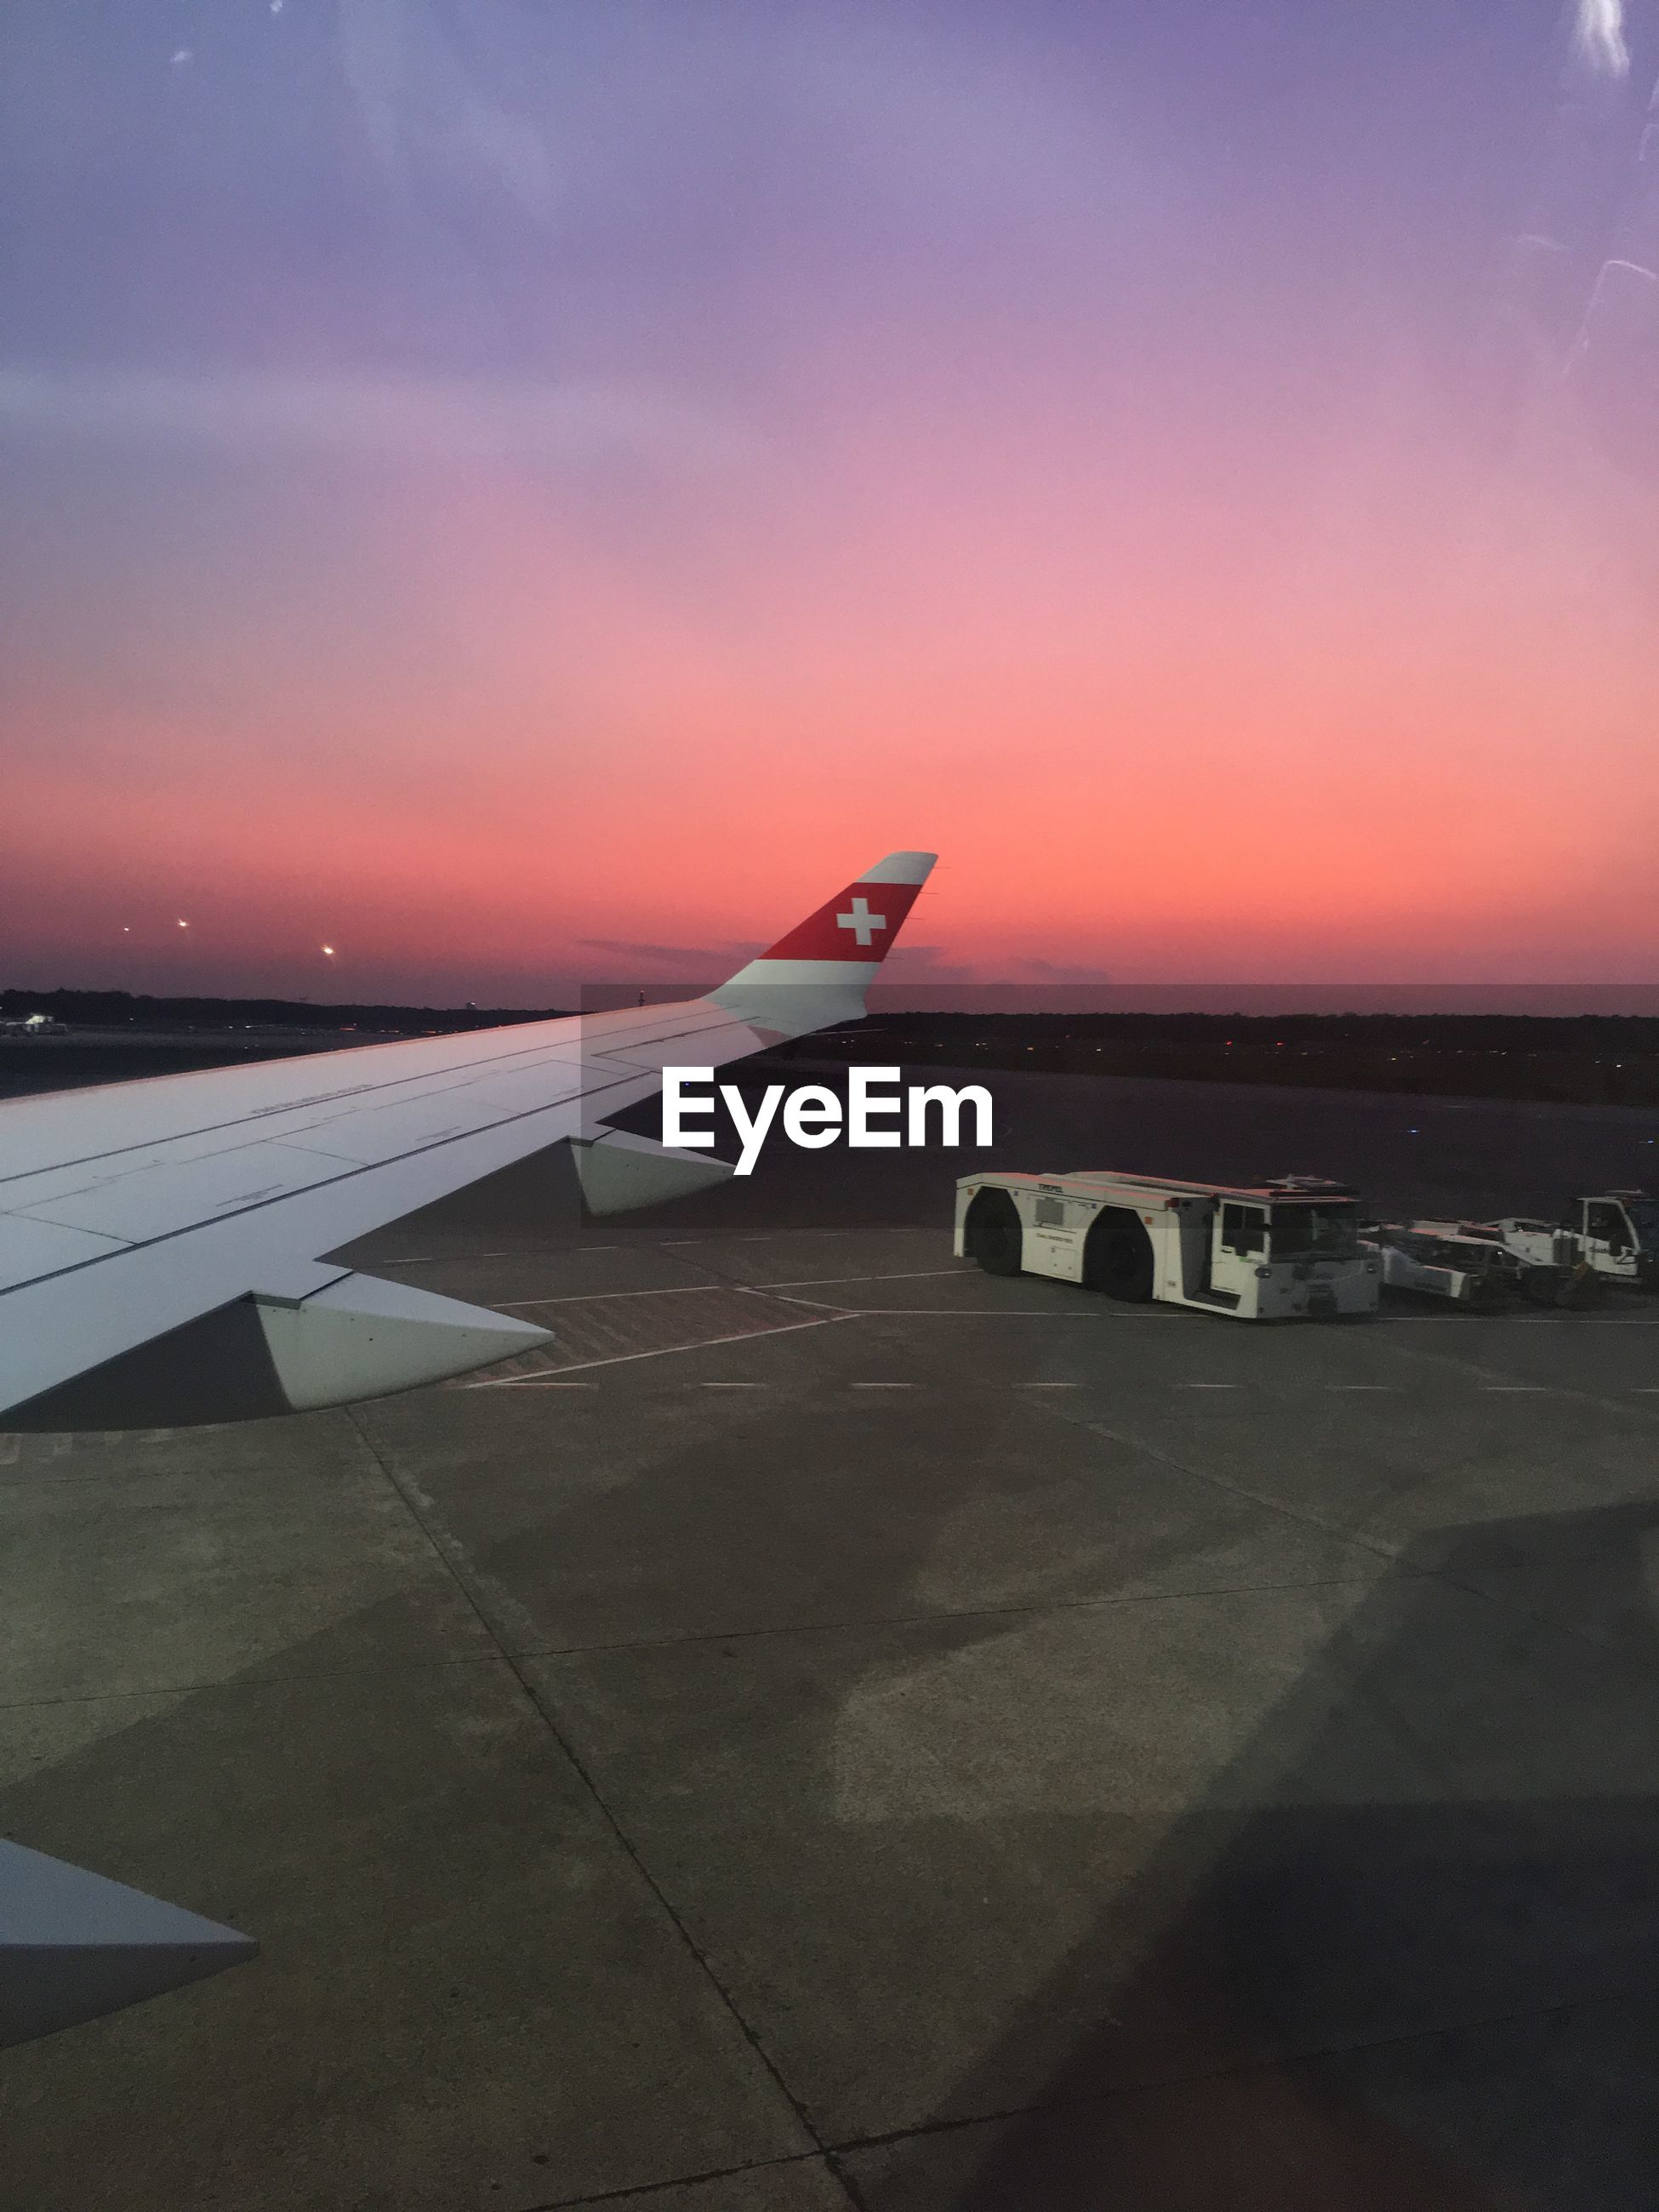 AIRPLANE ON AIRPORT AGAINST SKY DURING SUNSET